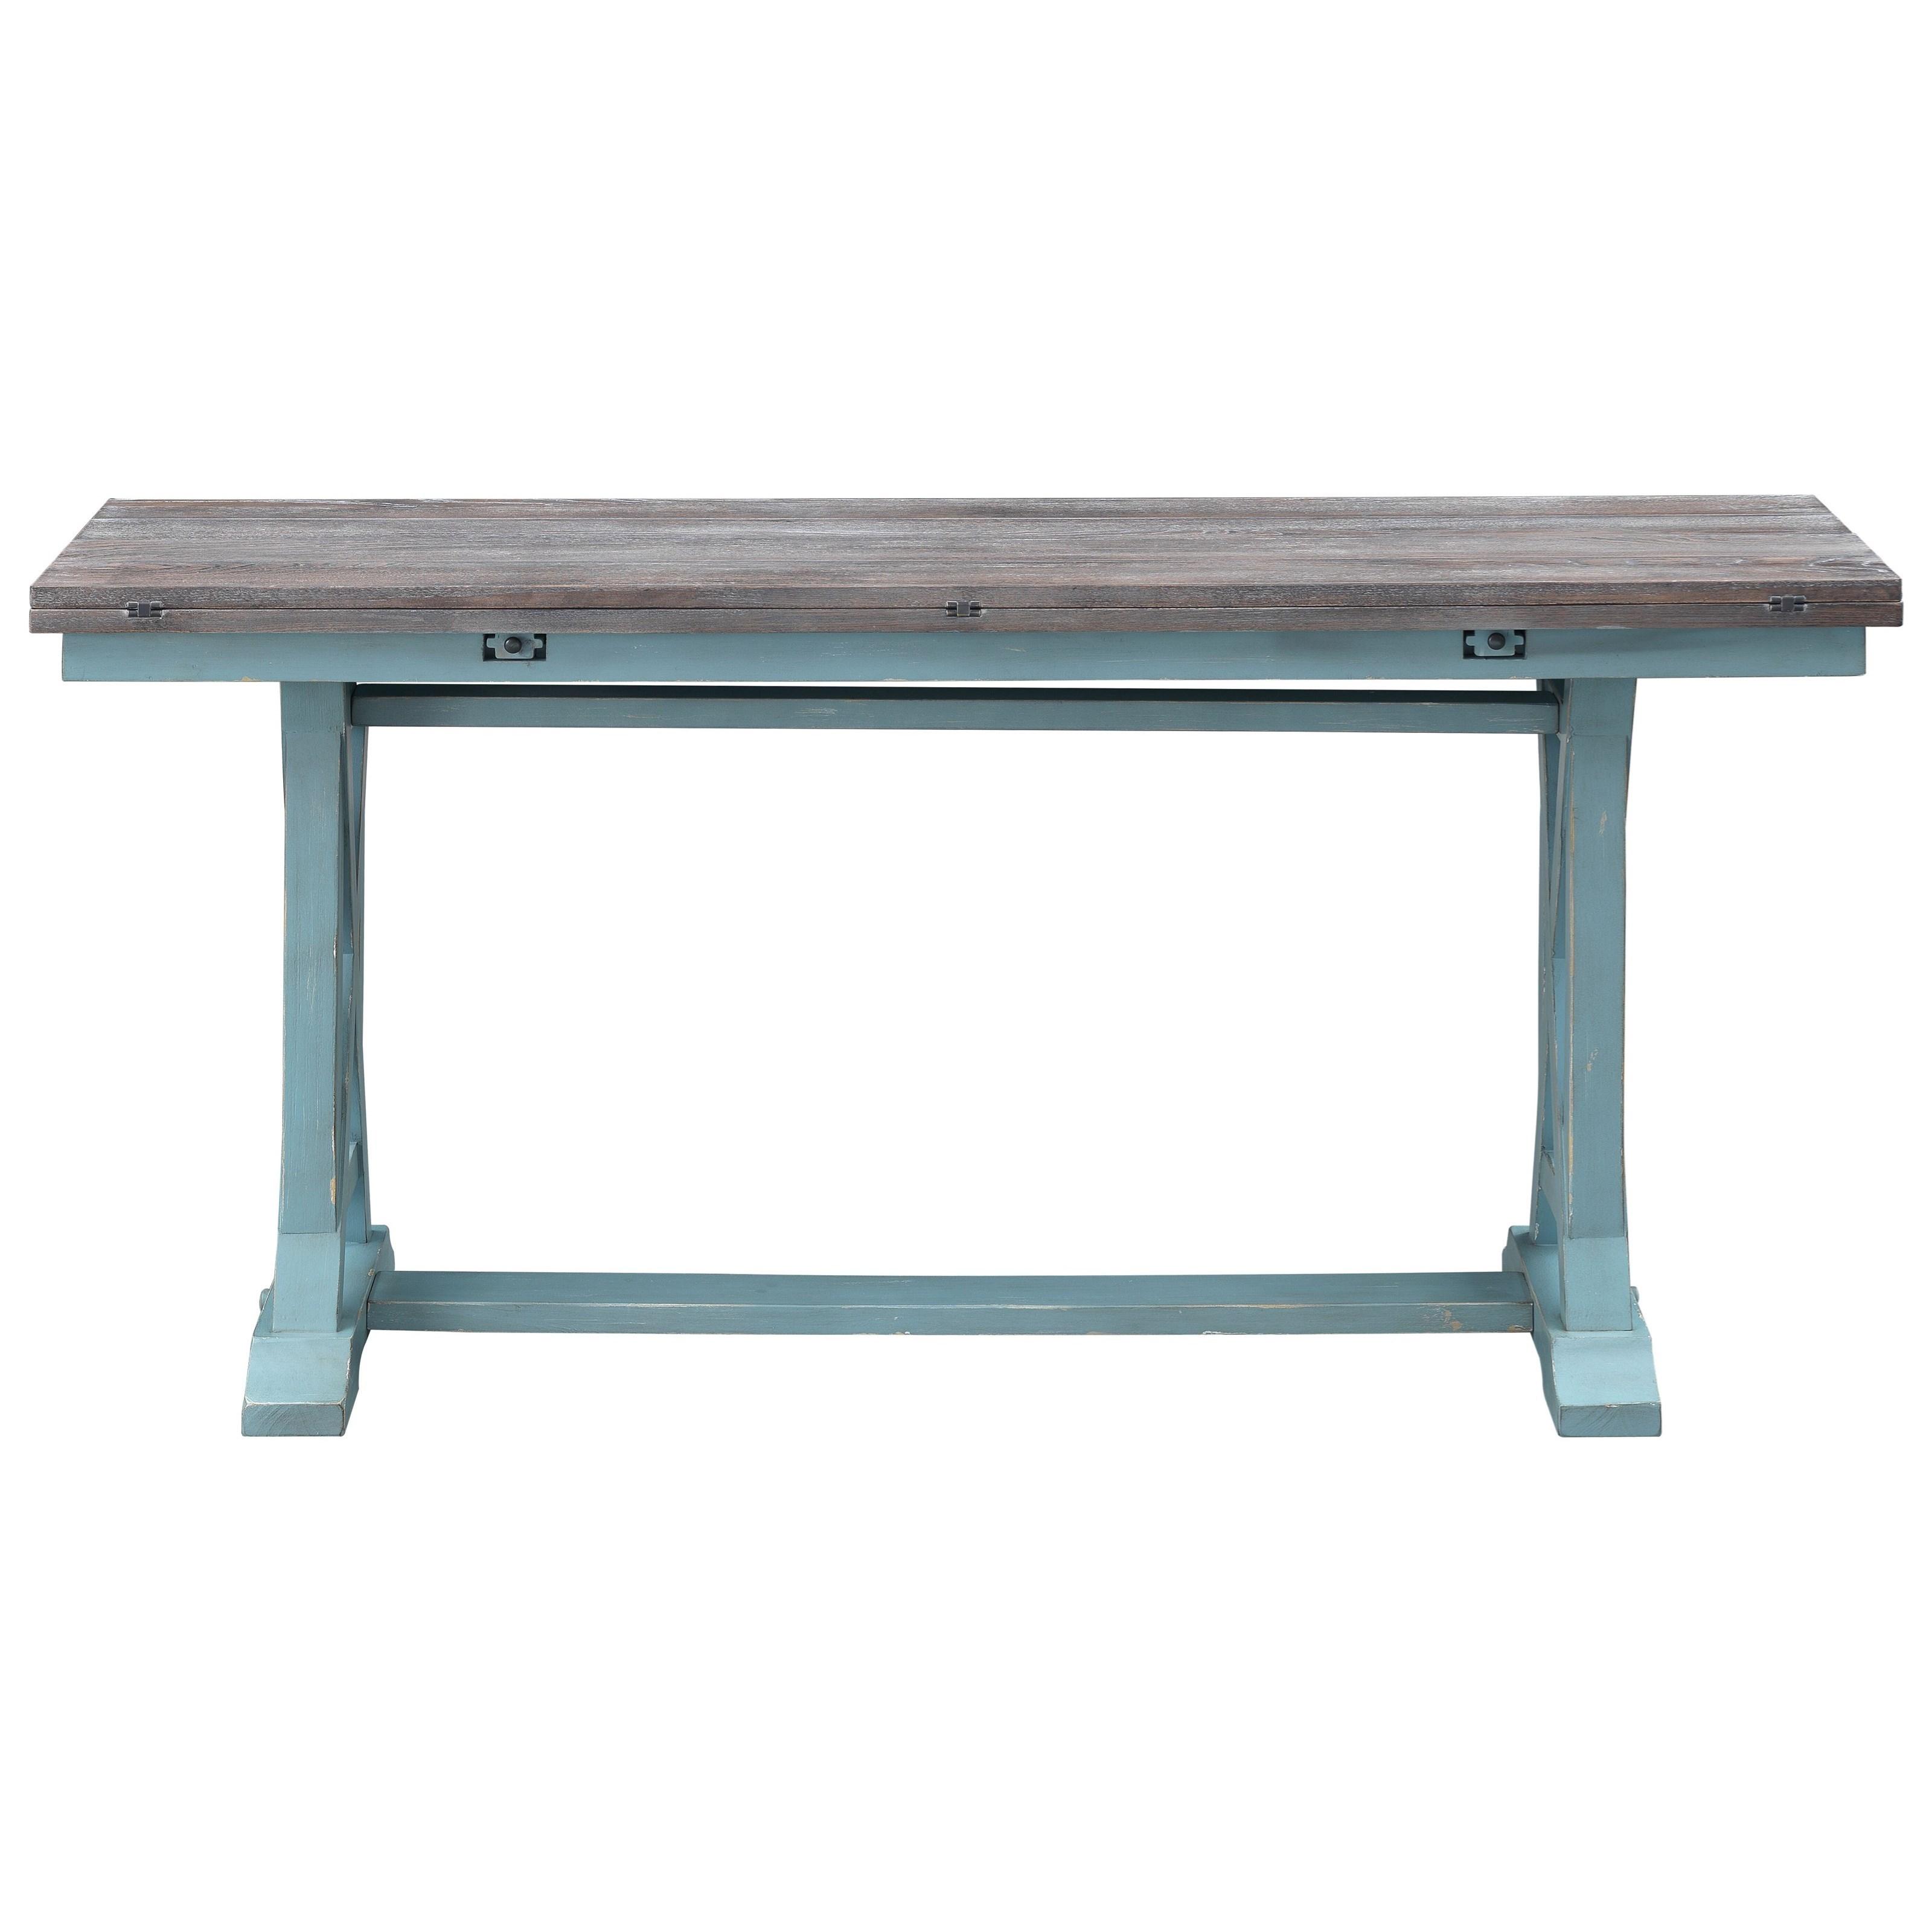 Bar Harbor Console Table by Coast to Coast Imports at HomeWorld Furniture